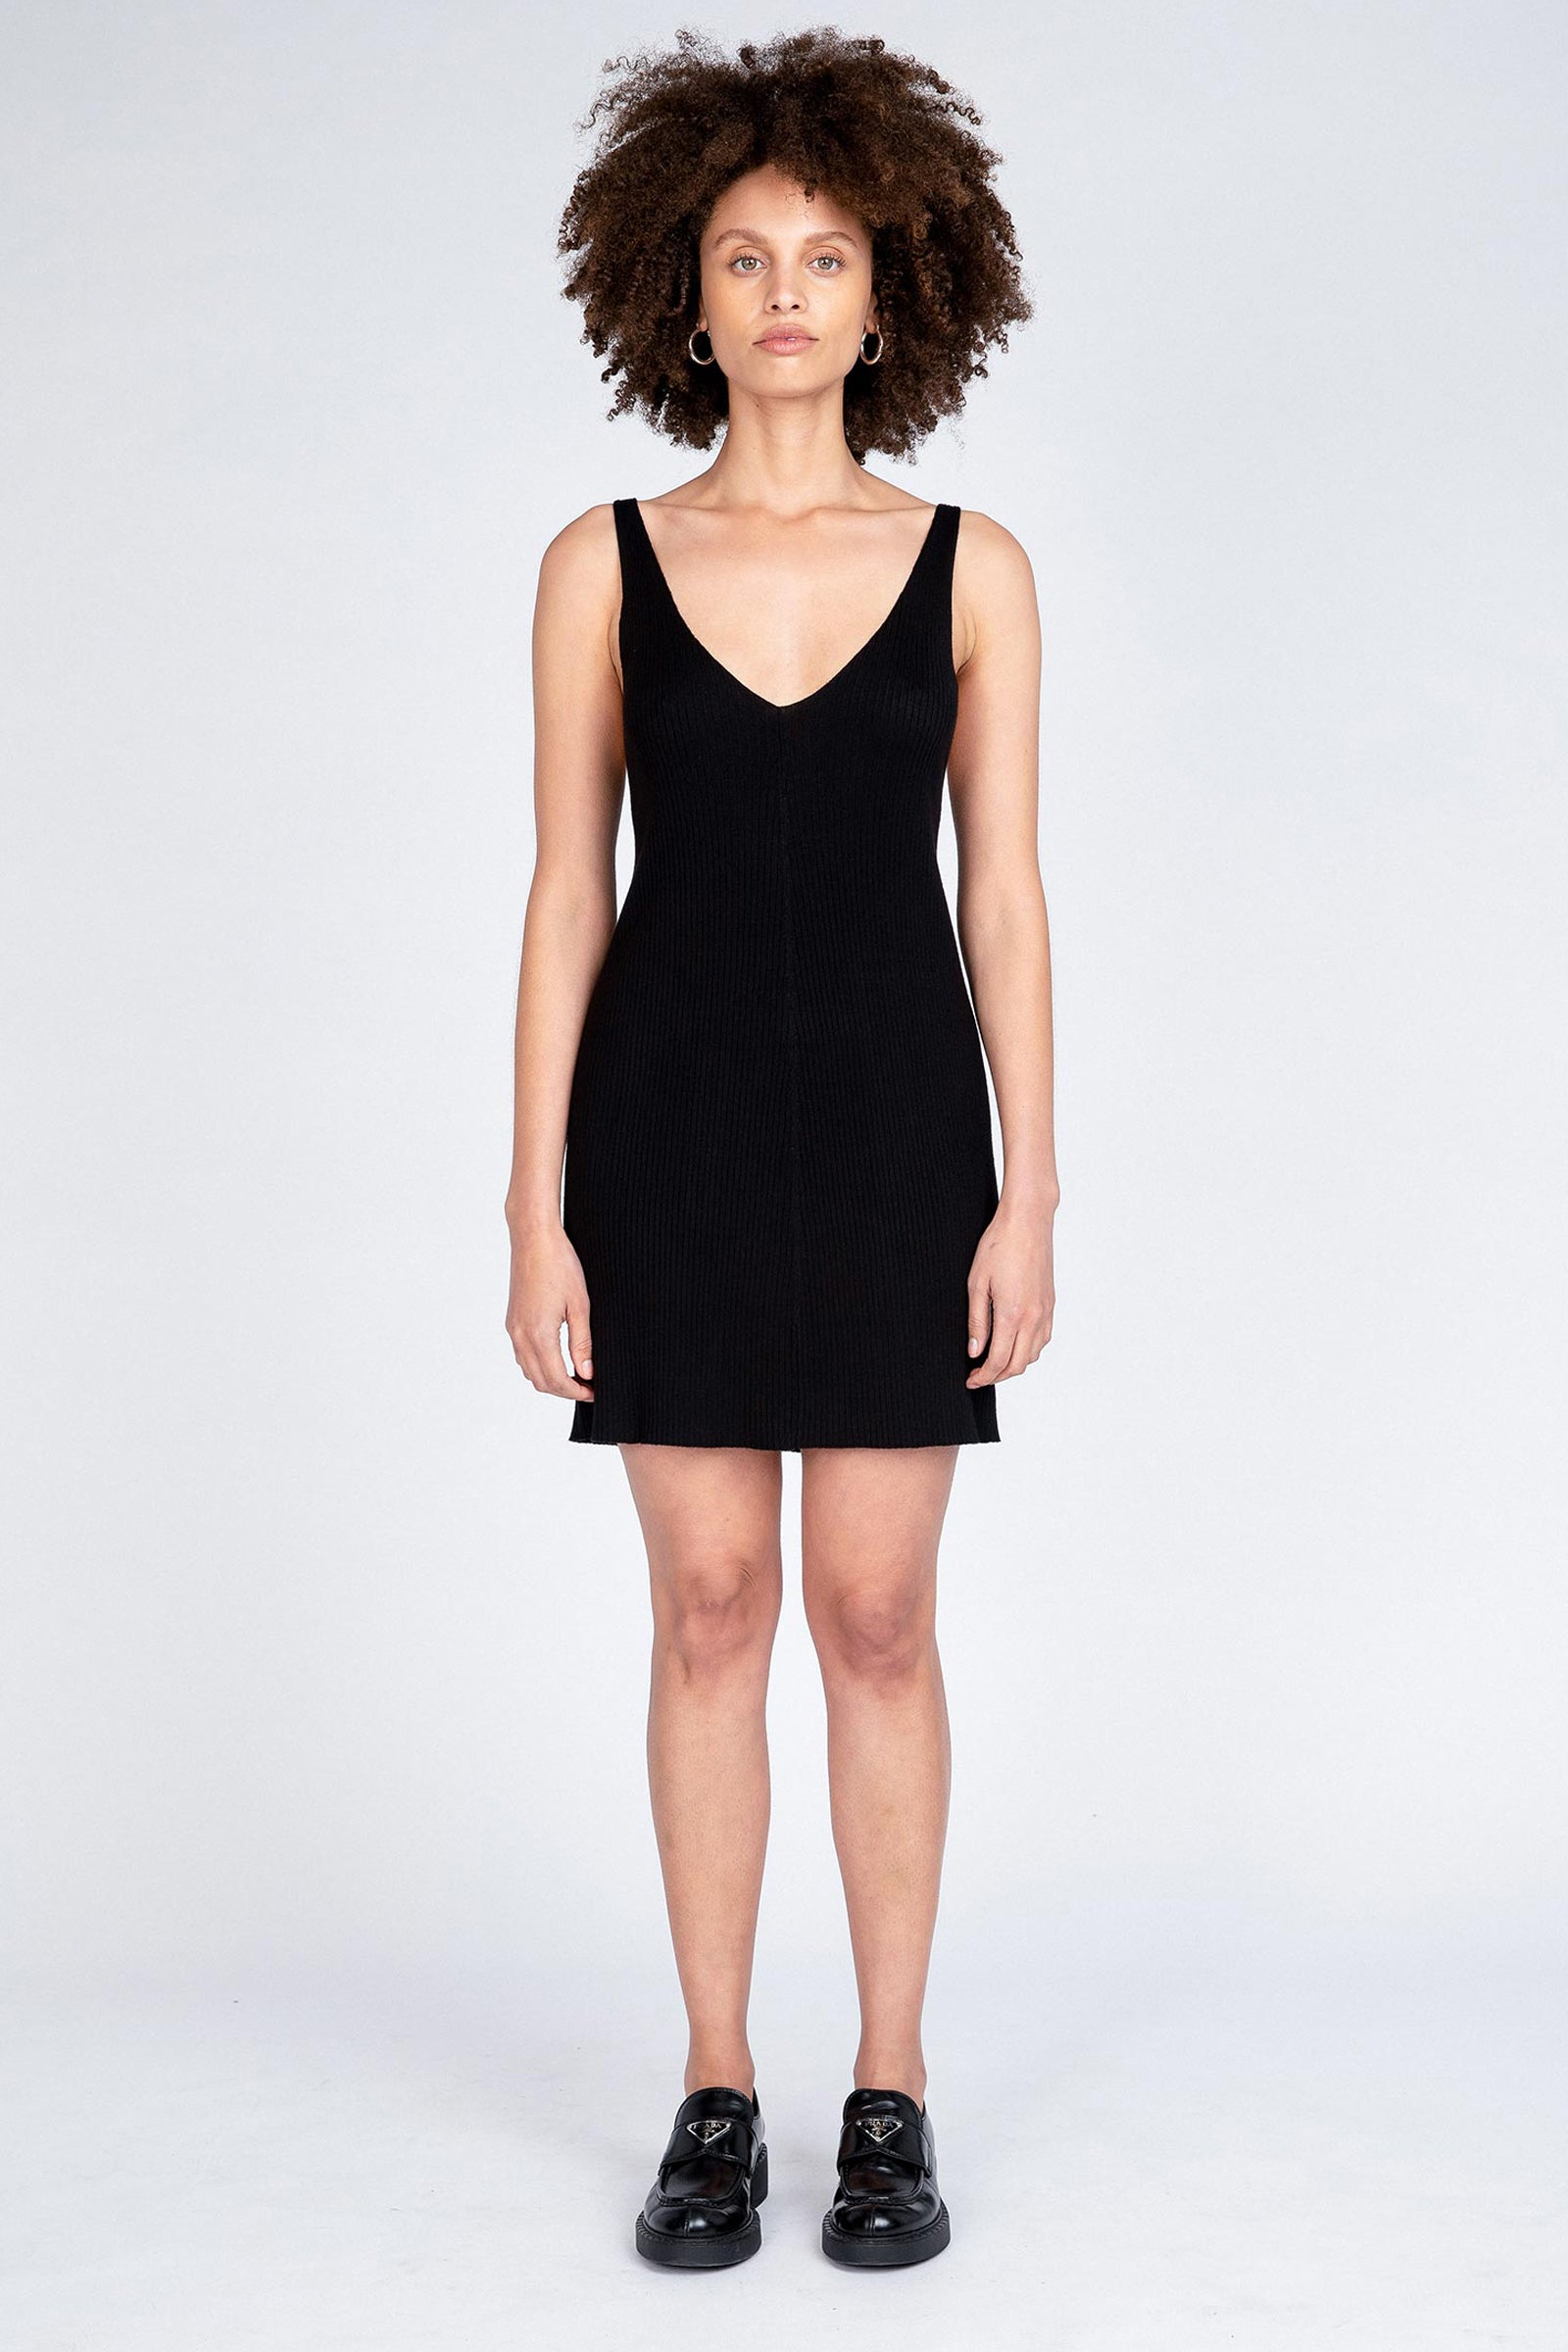 Moves Knit Dress - Black